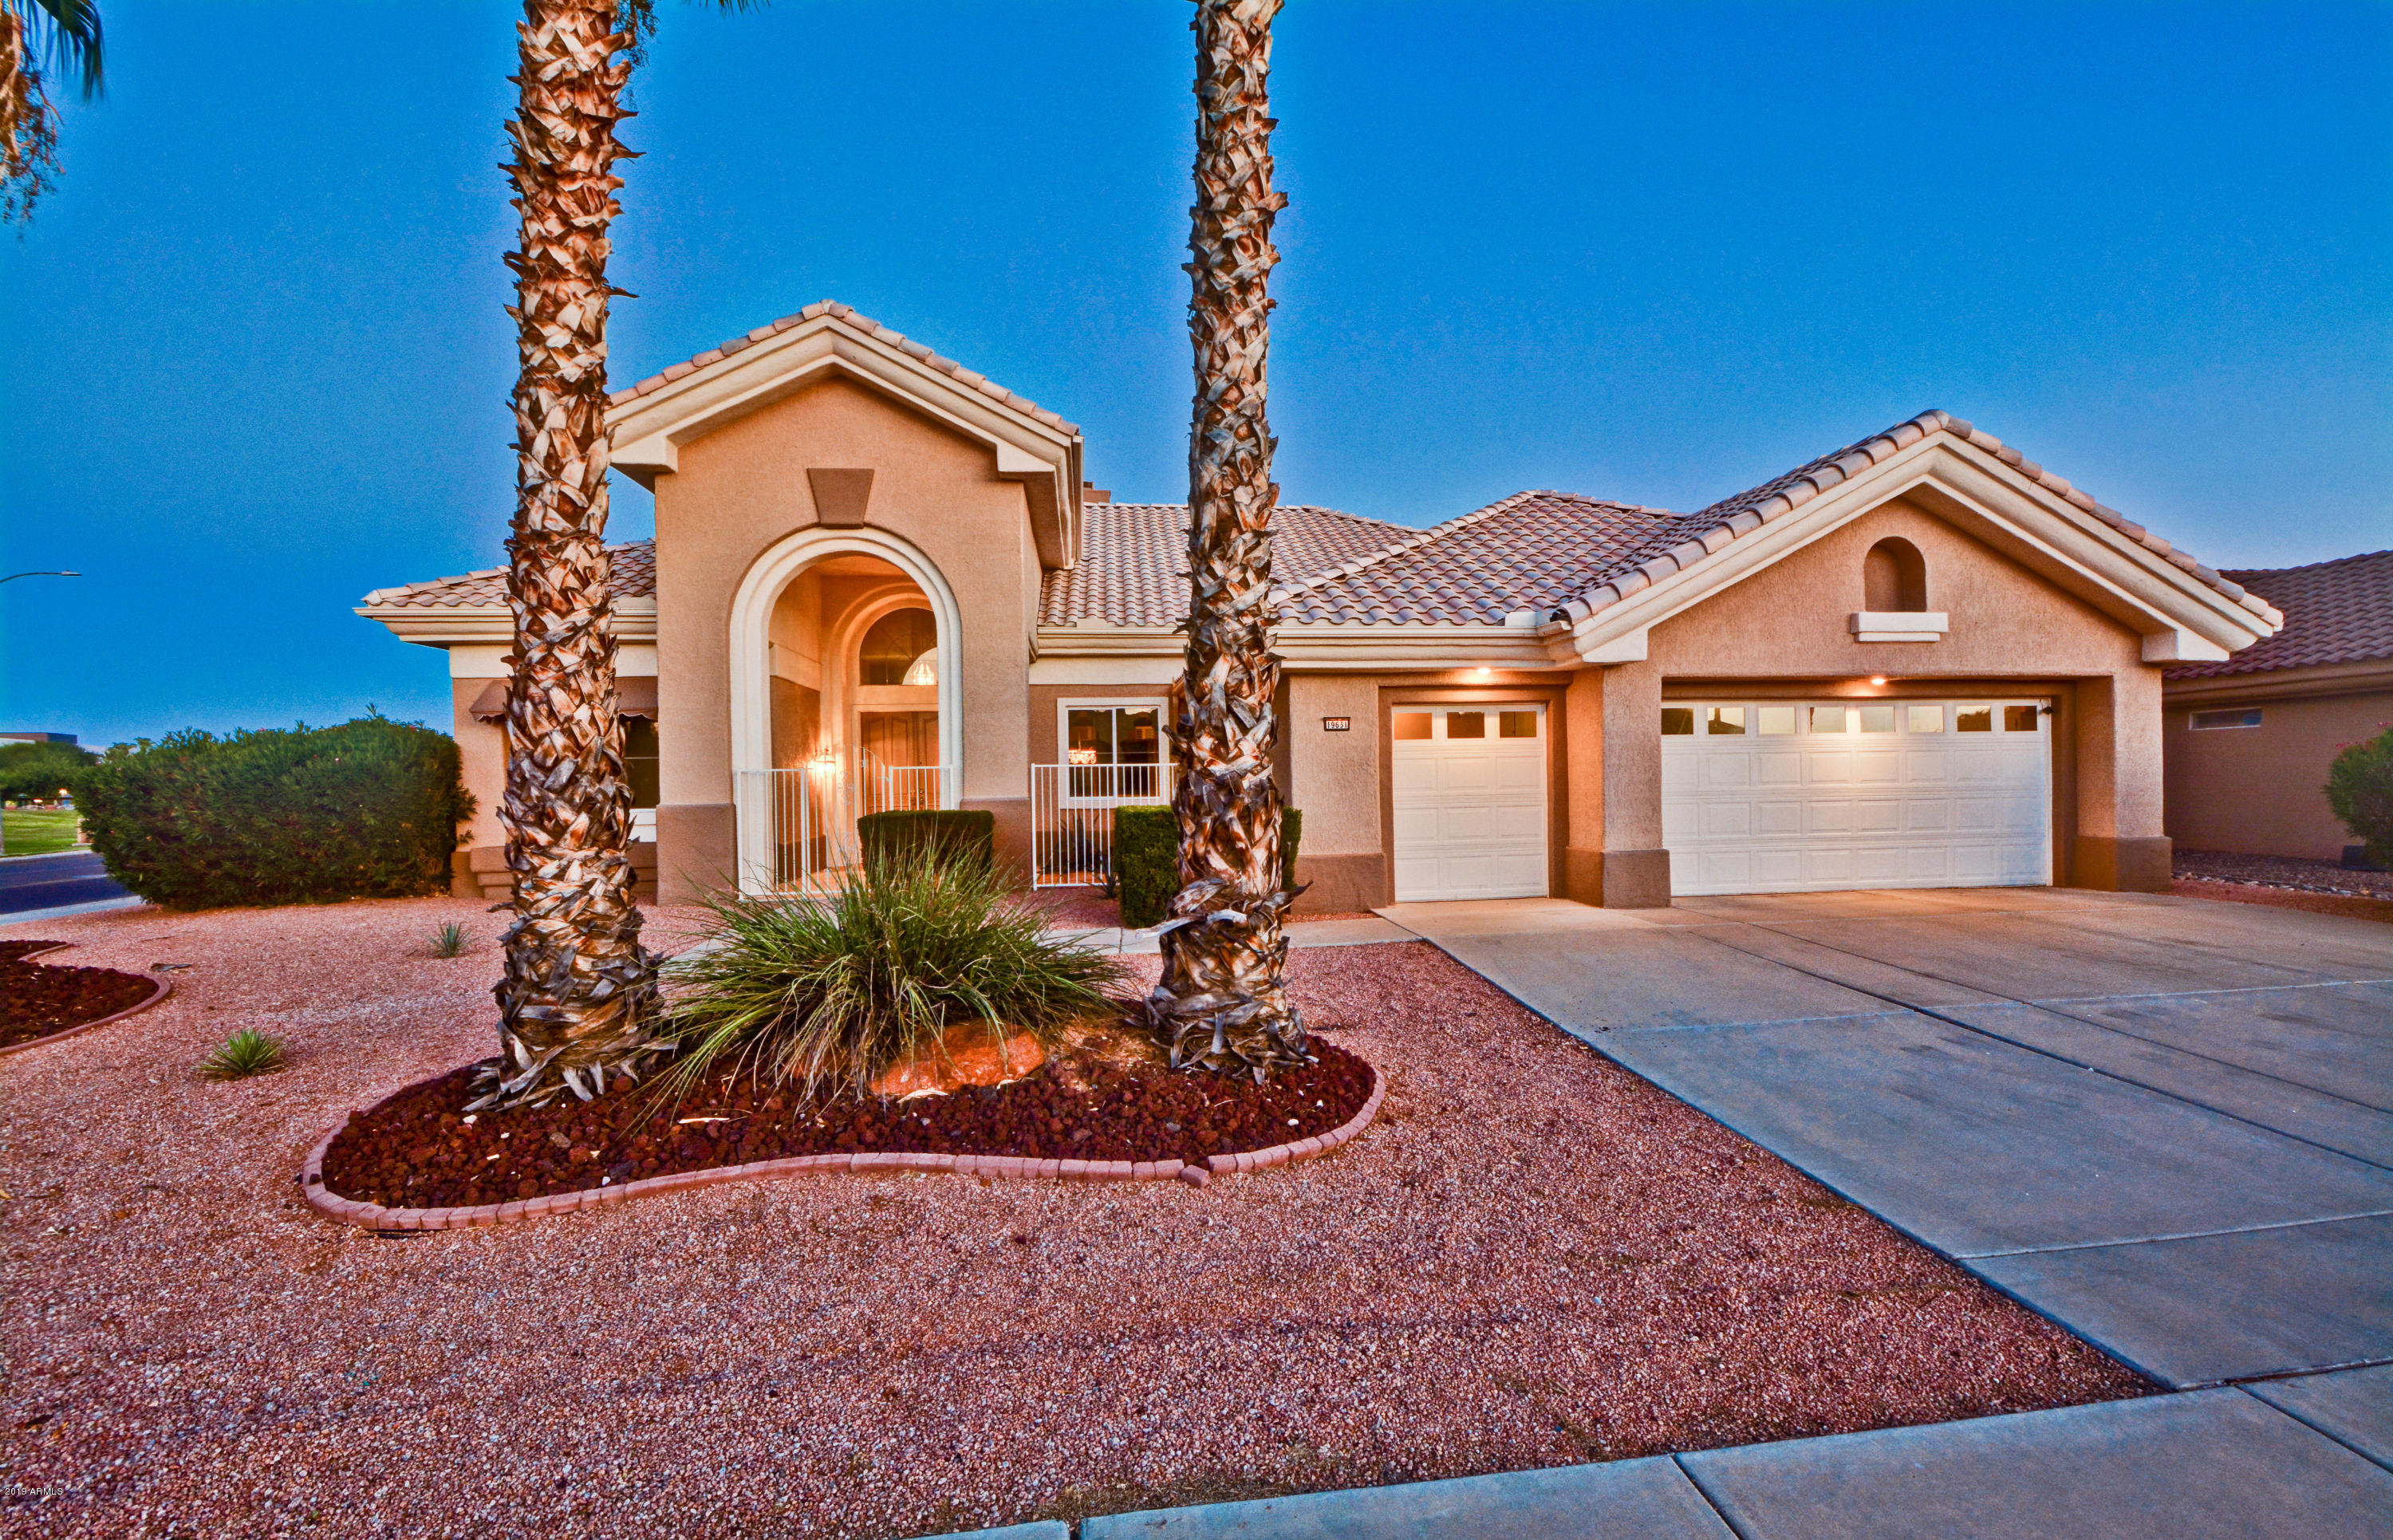 MLS 5967019 19631 N WHITE ROCK Drive, Sun City West, AZ 85375 Sun City West AZ Tennis Court